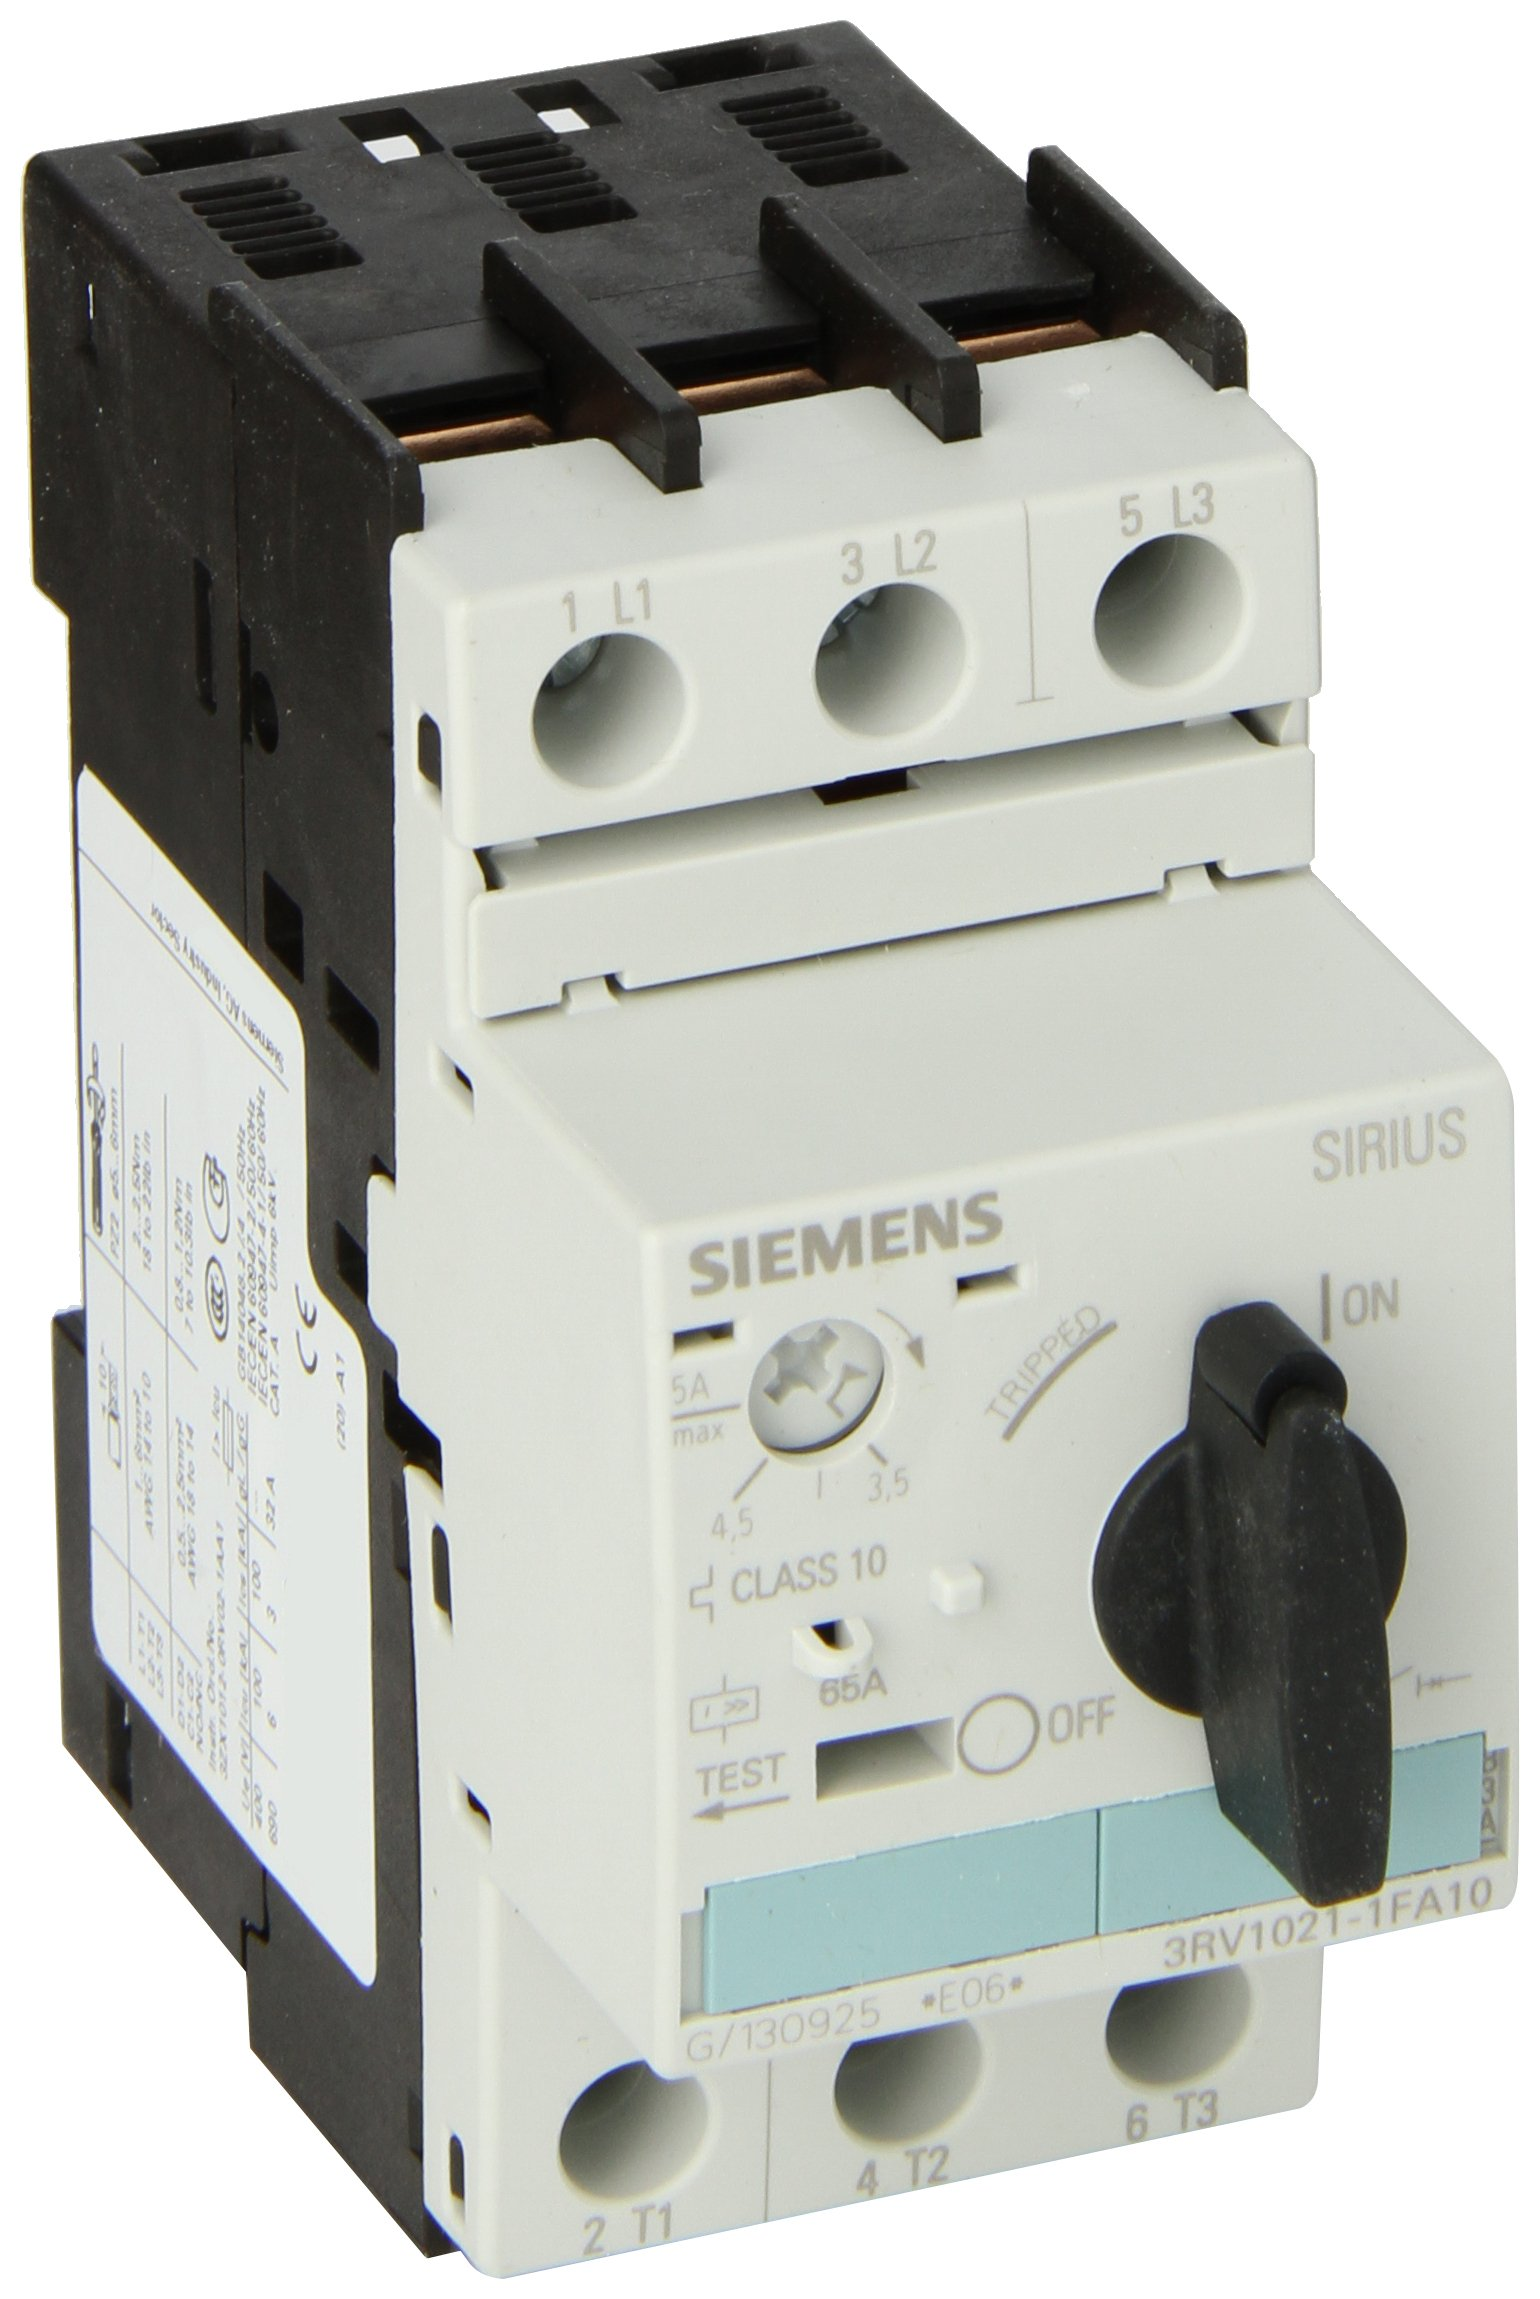 Siemens 3RV1021-1FA10 Manual Starter and Enclosure, Open Type, 3.5-5 FLA Adjustment Range